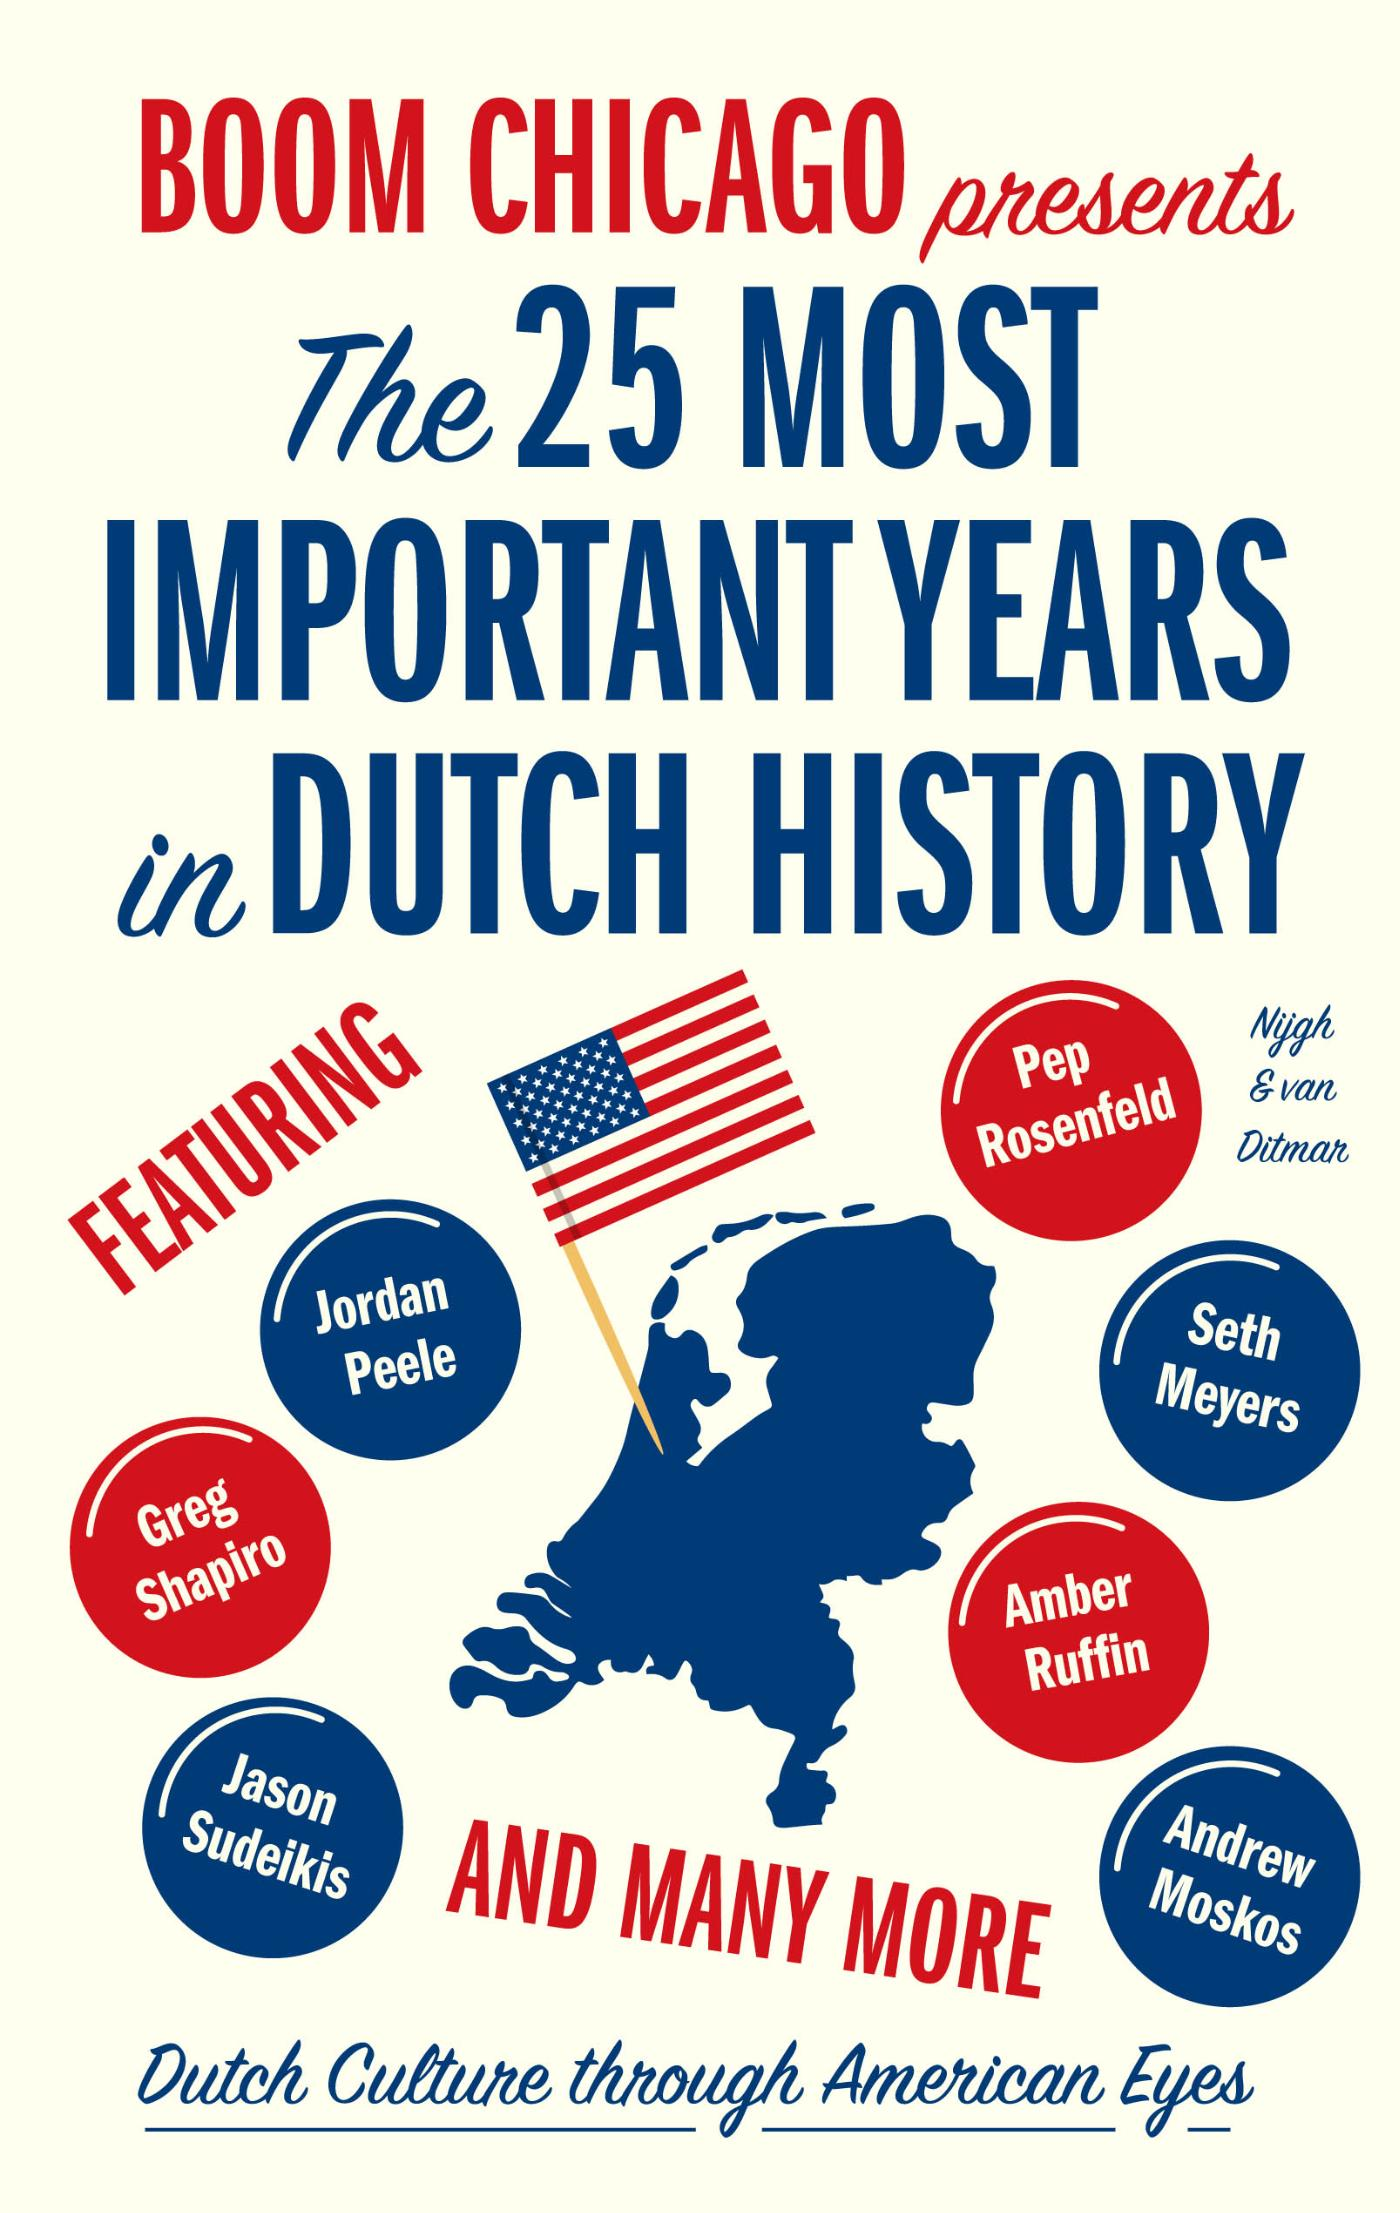 The 25 Most Important Years in Dutch History